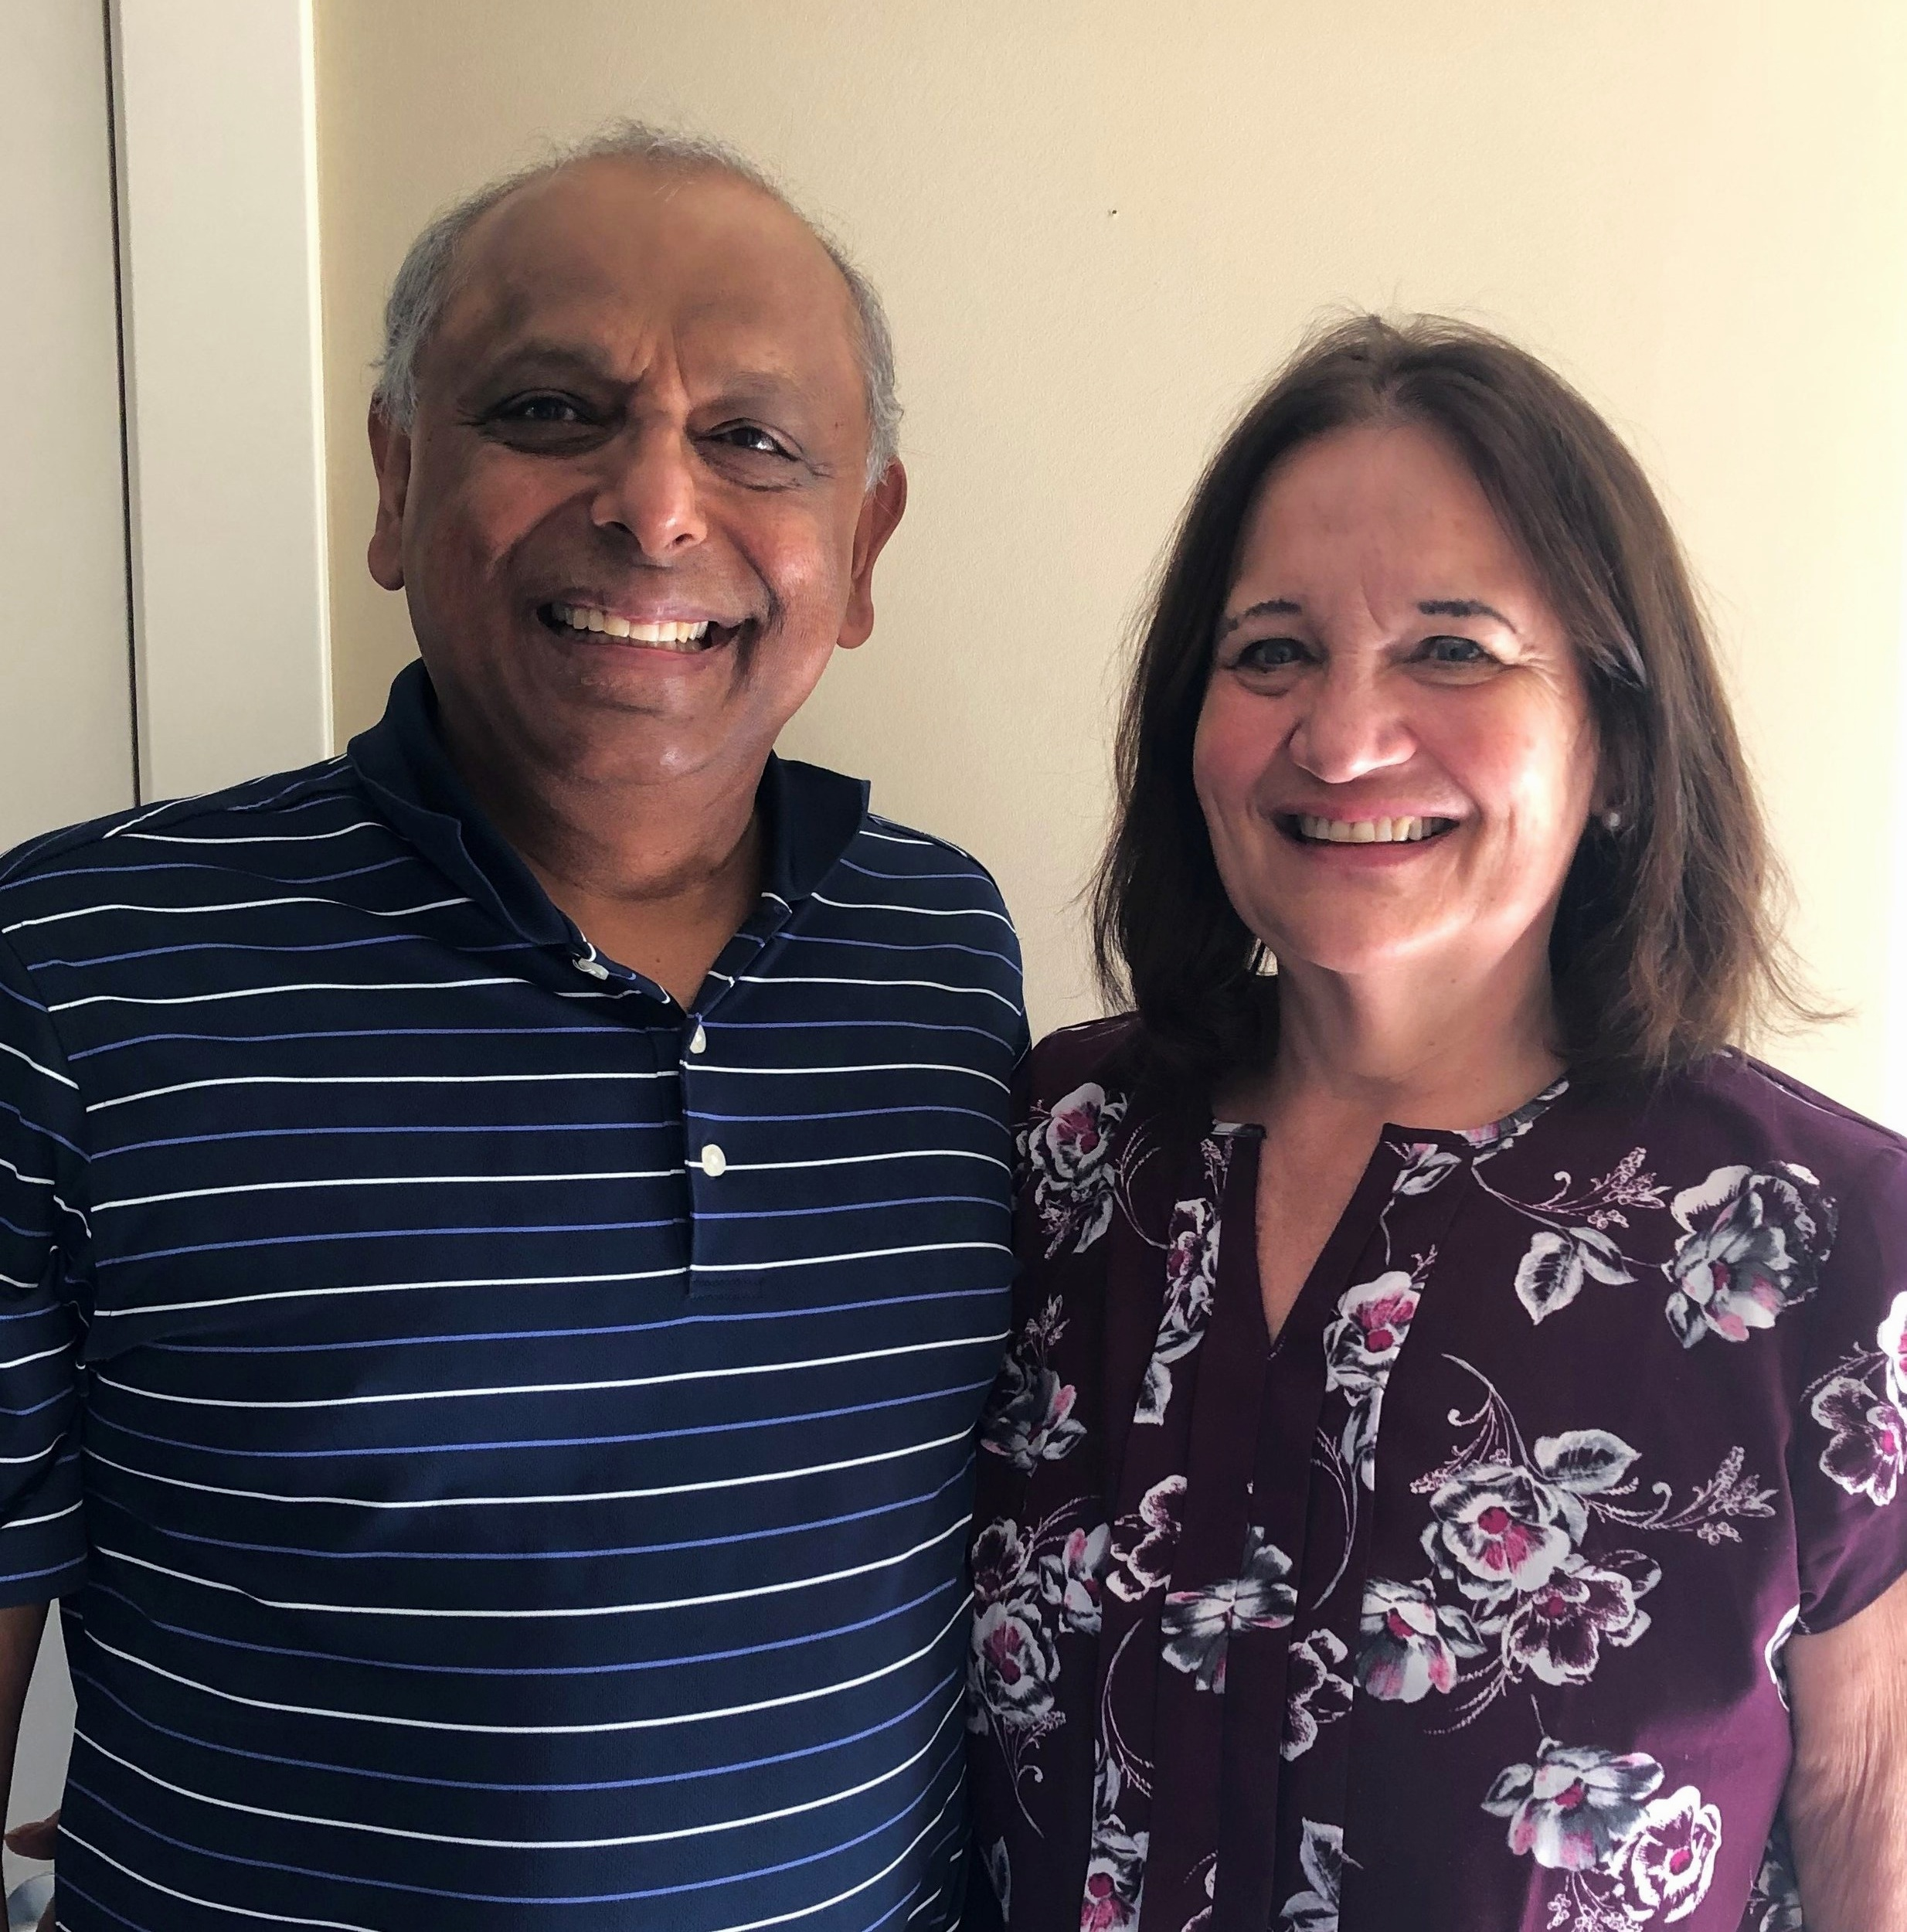 Santosh and Ruth Krishnan have increased their gift to $50,000 in support of the Capital Campaign.